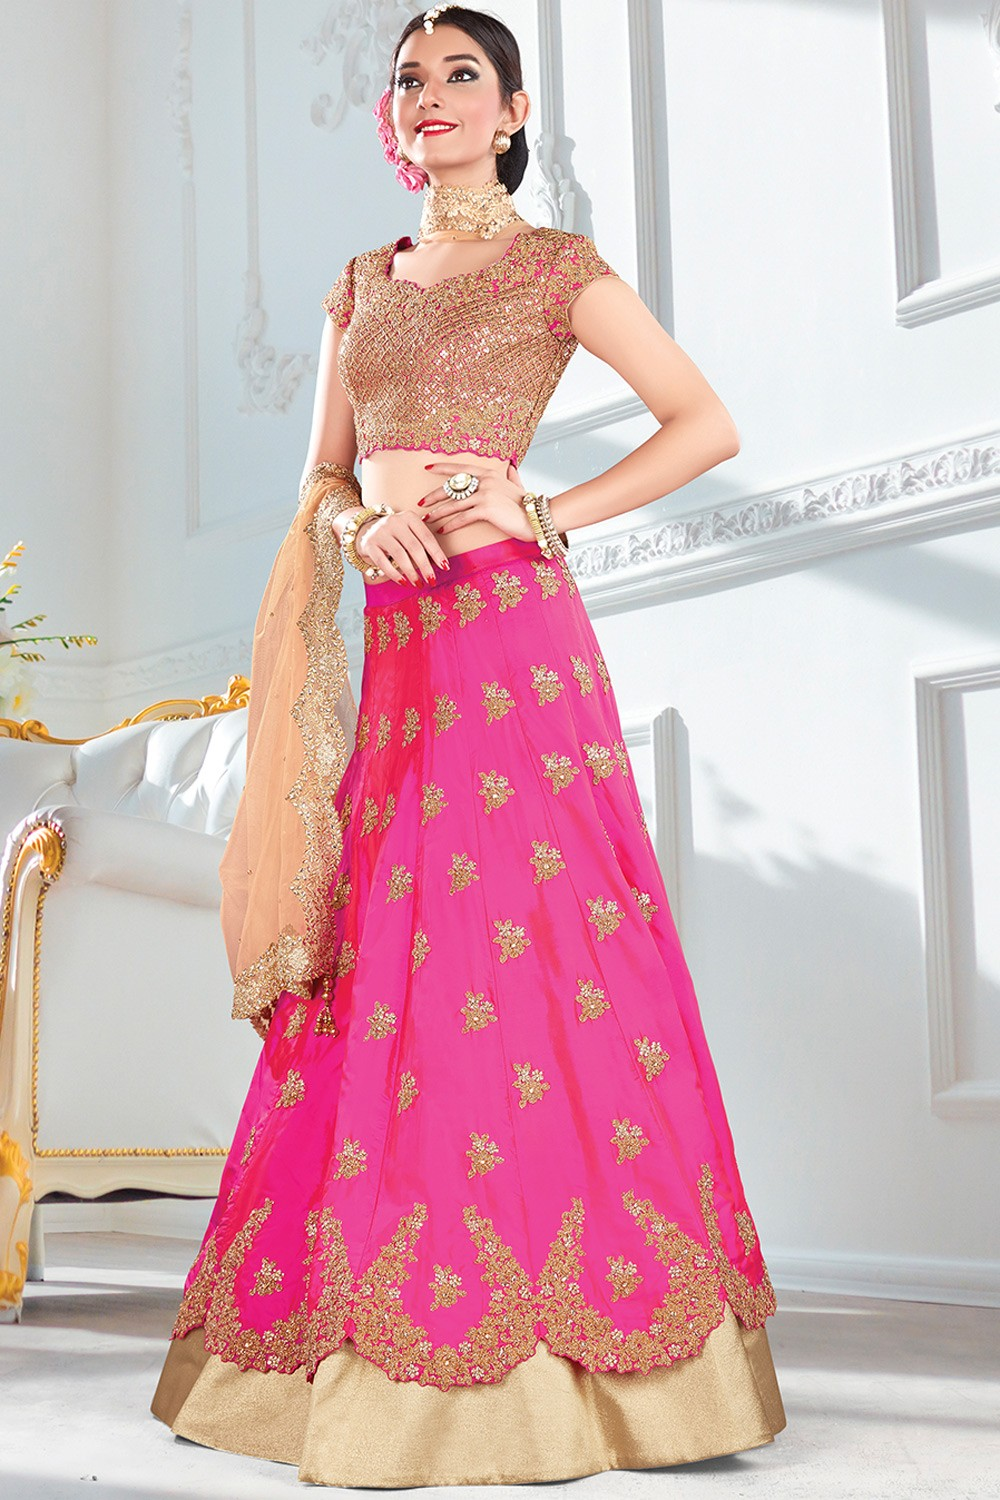 Paaneri Designer Pink With Light Brown Color Floral Thread Stone Work Silk Unstich Lehenga With Net Pallu-Product Code-17119711205